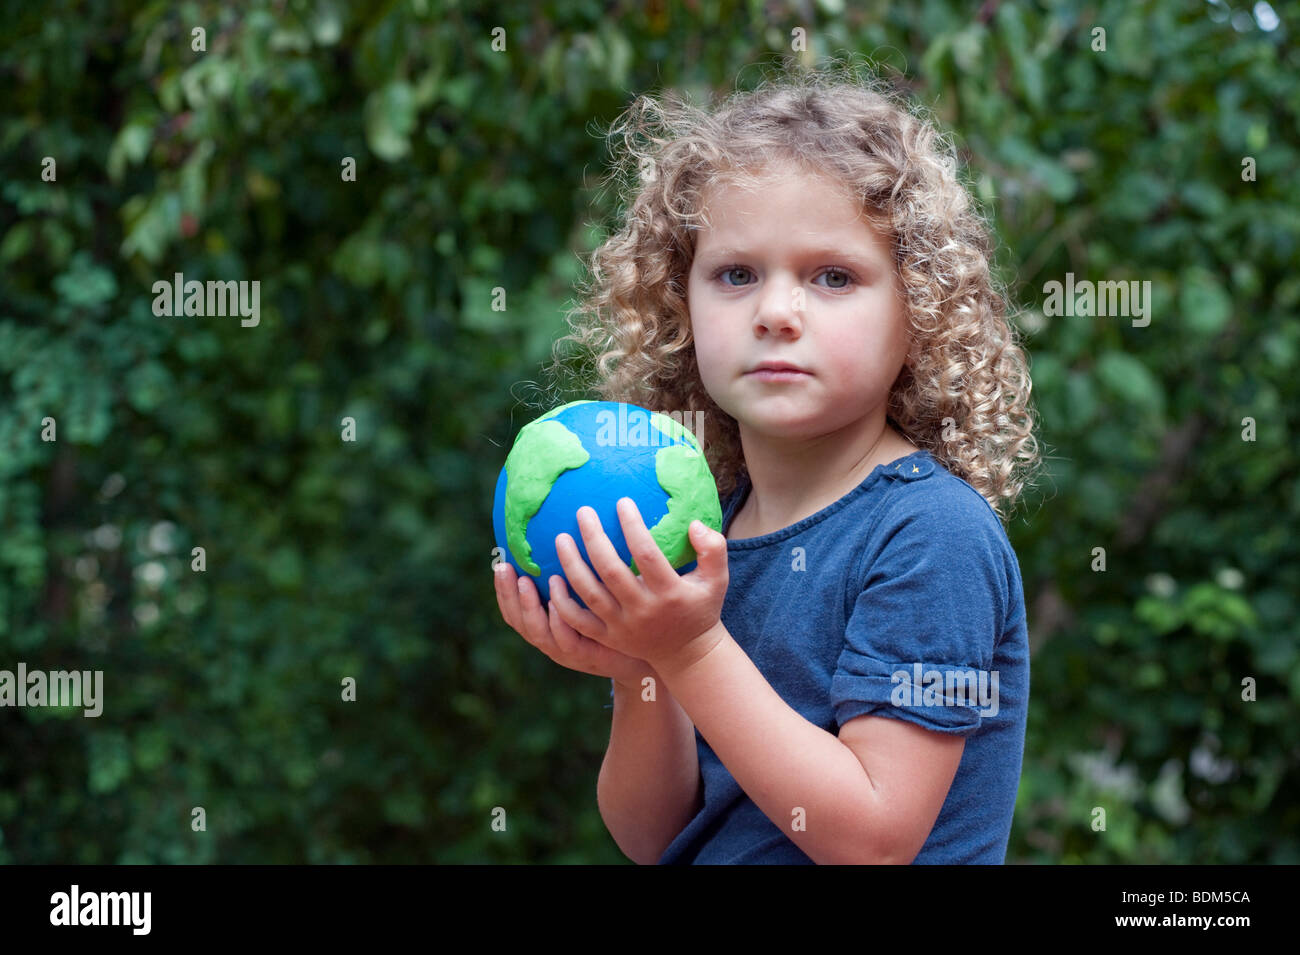 Young girl holding a model of planet Earth - Stock Image